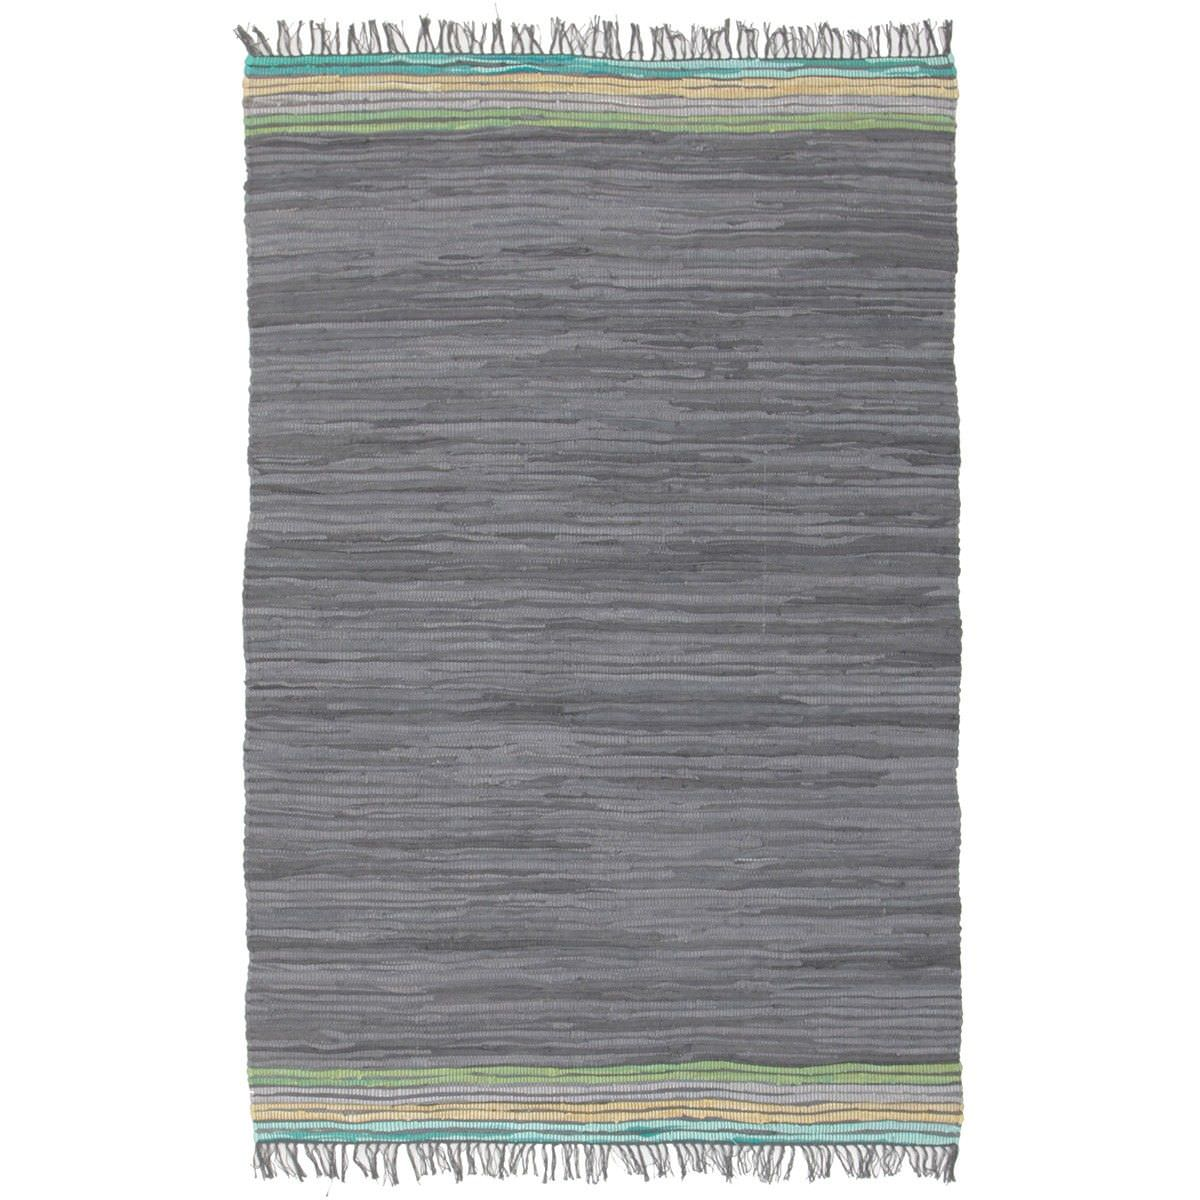 Atrium Hunter Cotton Rug, 270x180cm, Slate